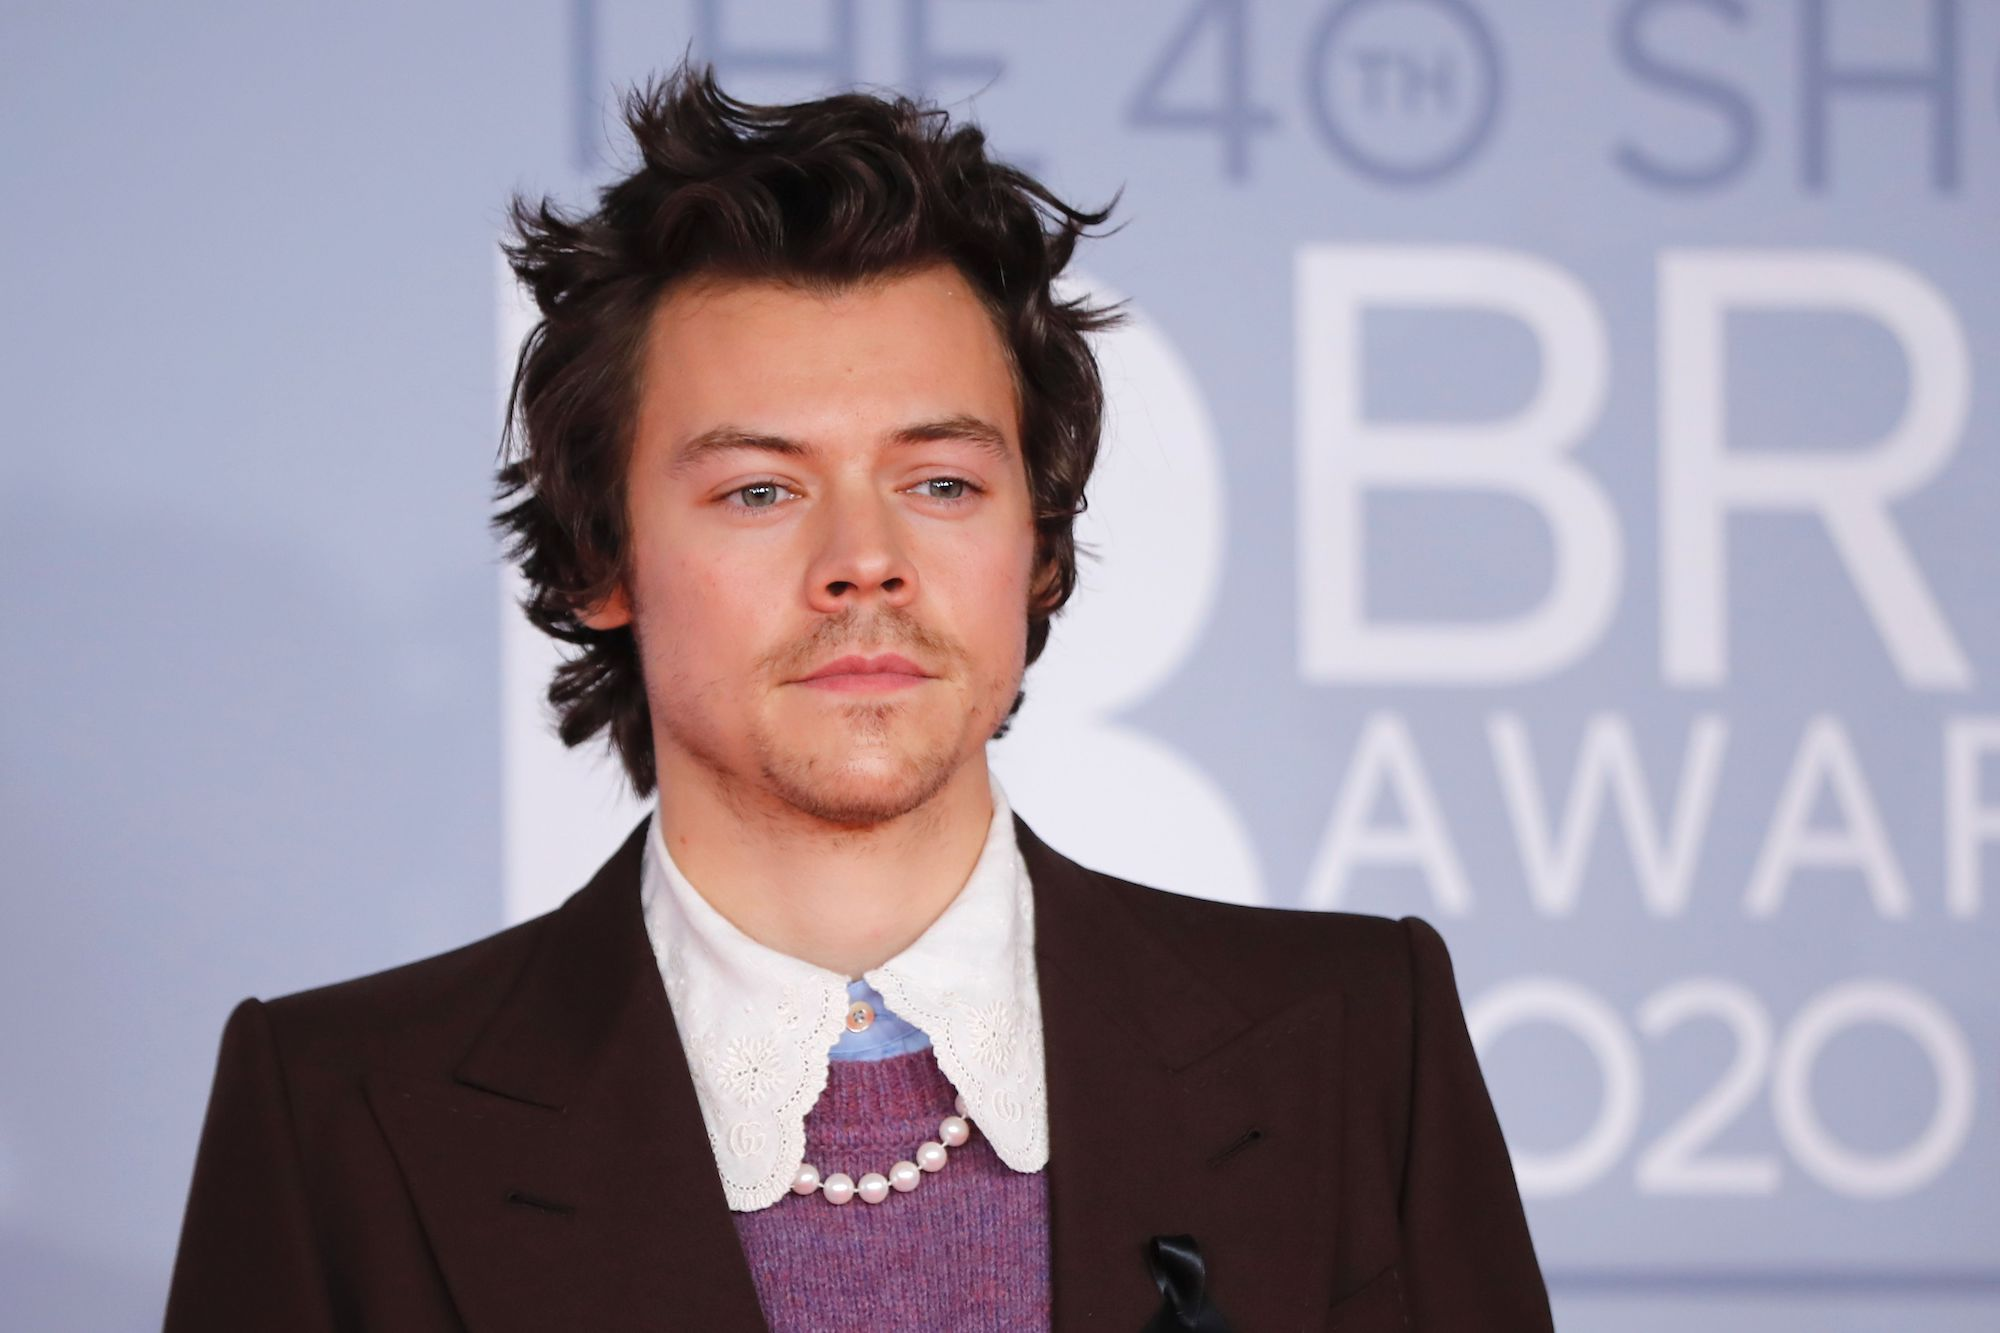 Harry Styles on the red carpet at the BRIT Awards 2020 in London on Feb. 18, 2020.